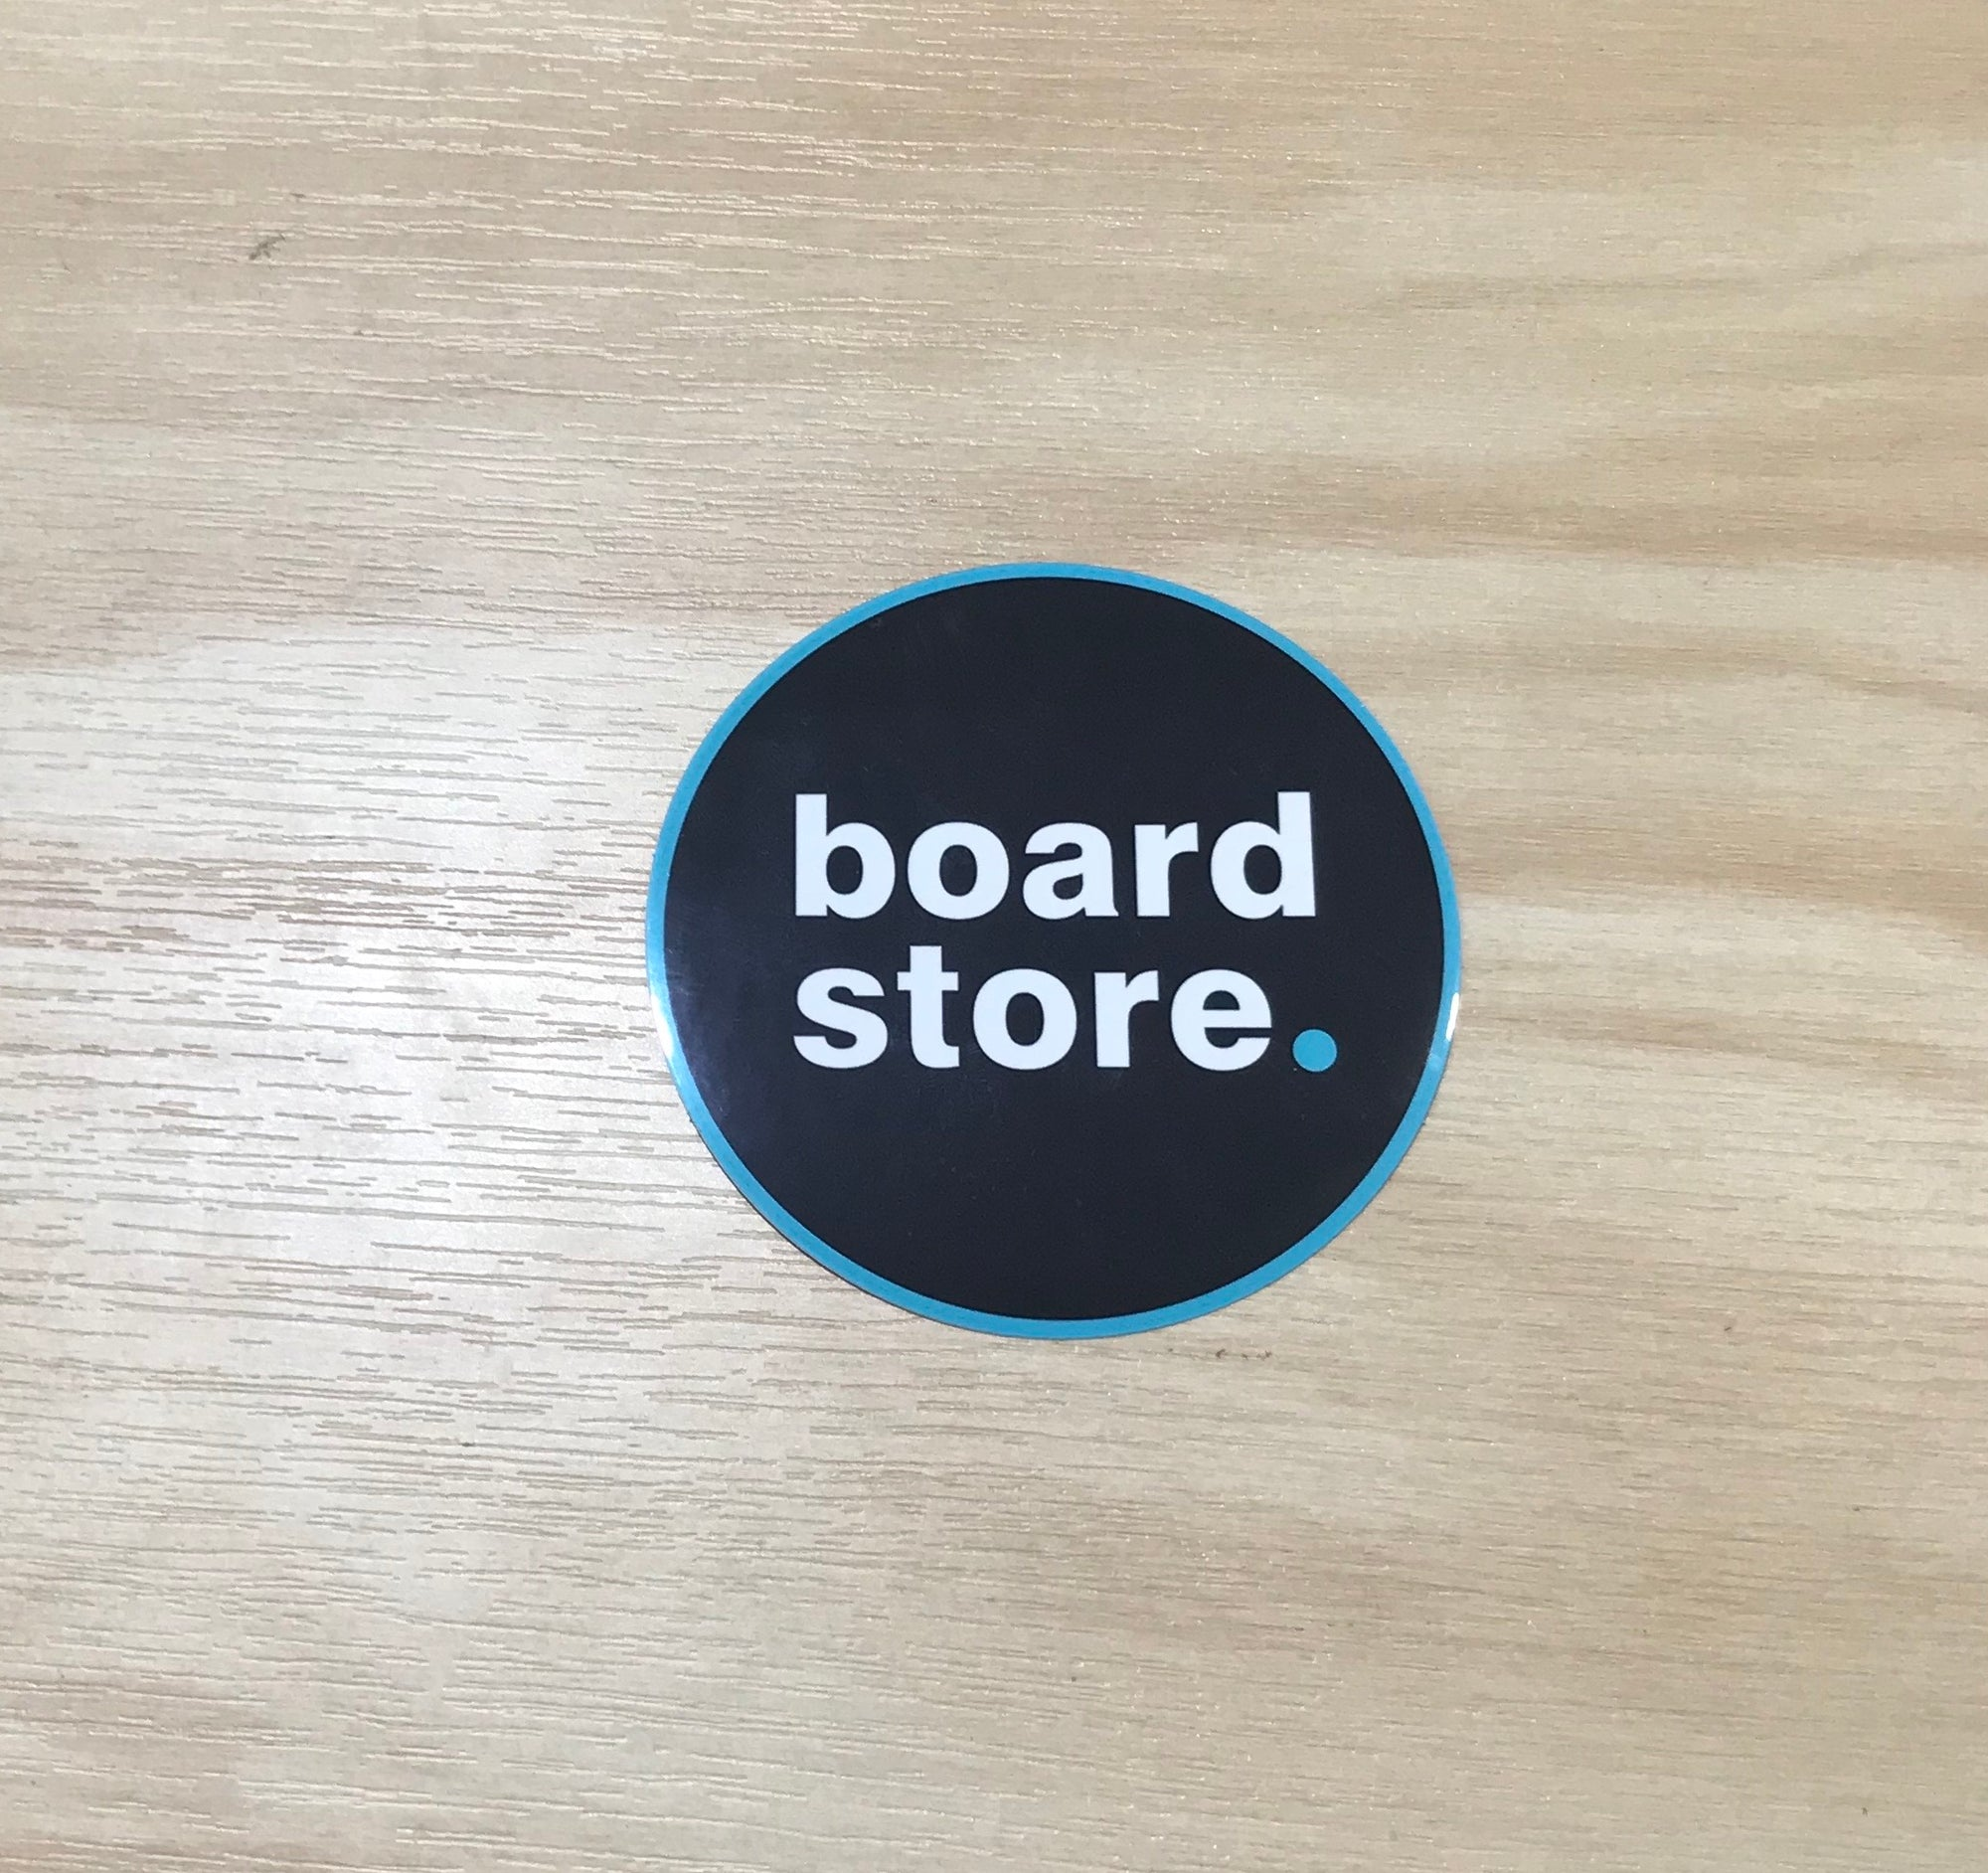 Board Store Logo Sticker - Board Store Board StoreSticker